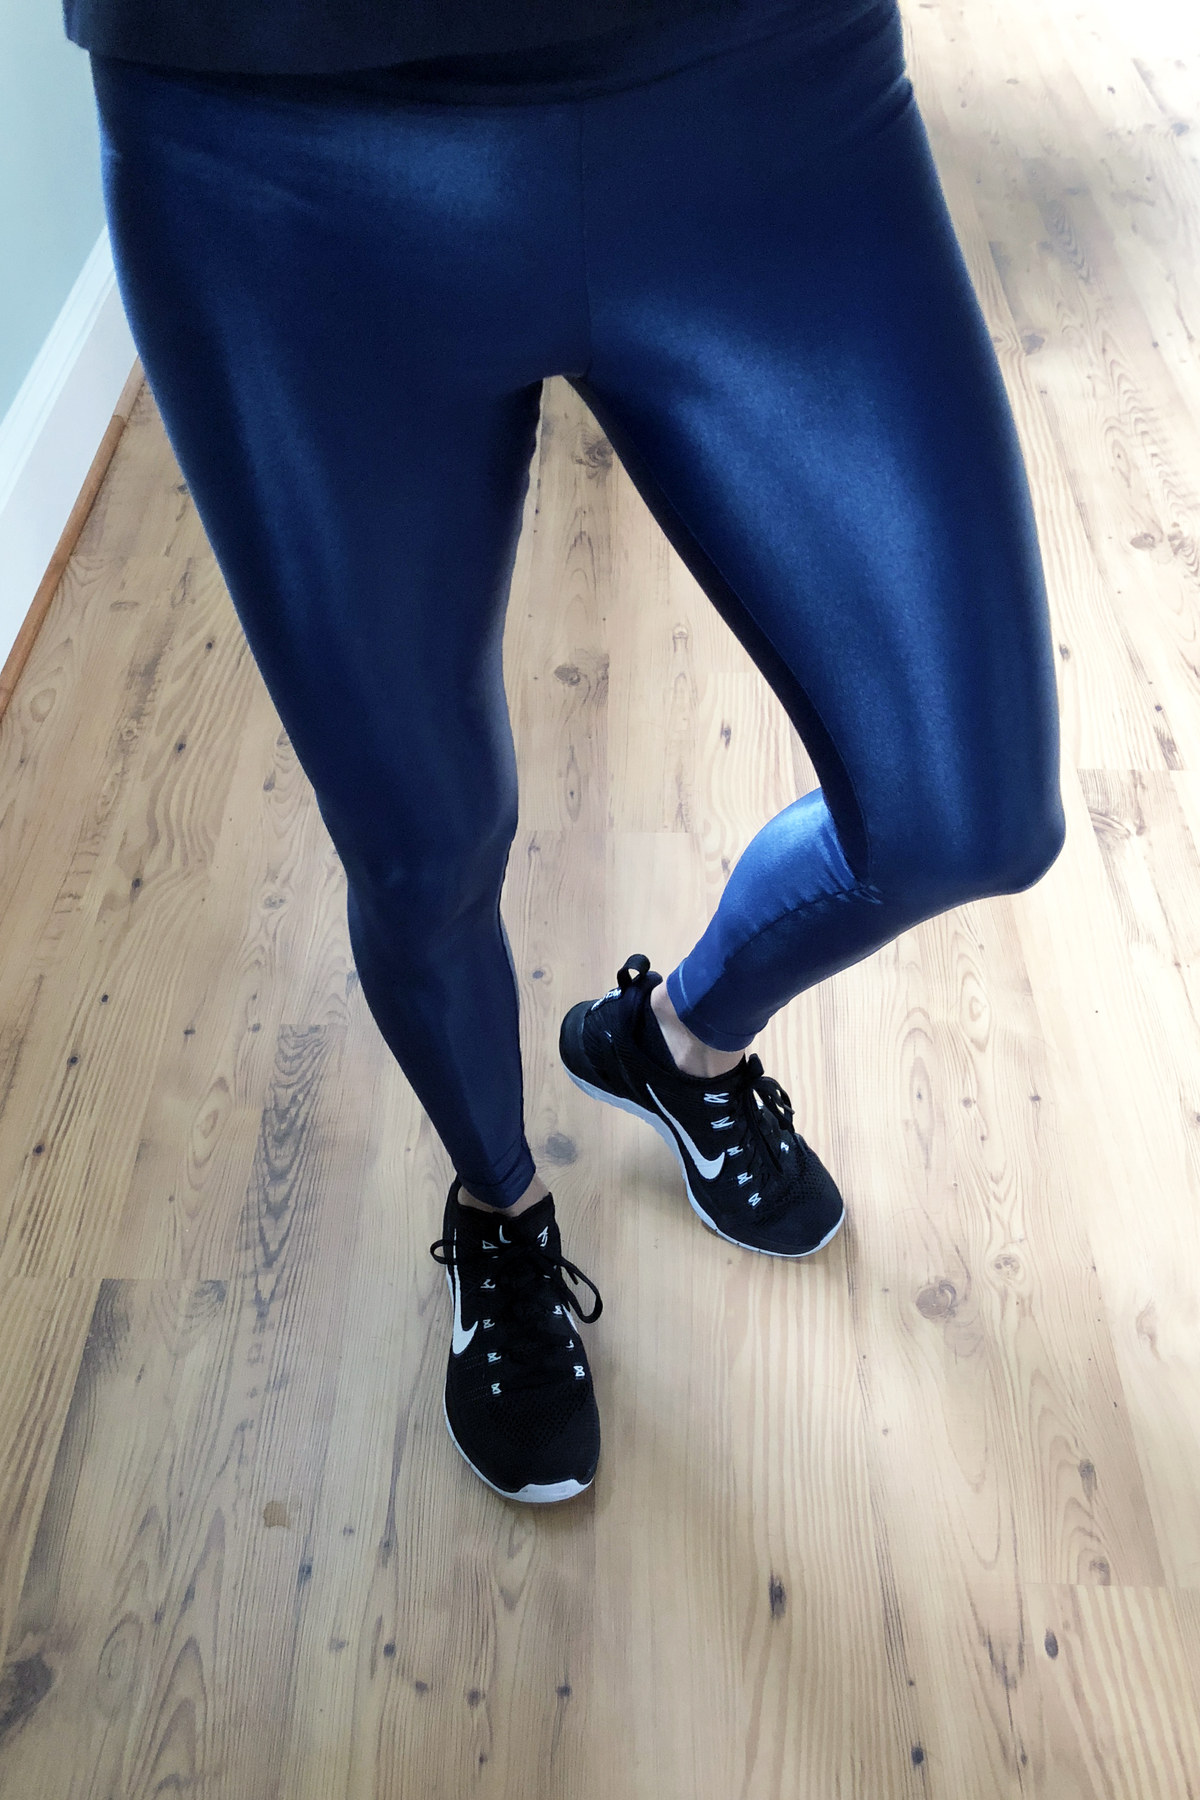 Are your leggings working as hard as you do? An active lifestyle requires a reliable  pair of leggings that fits like a glove, is easy to care for,  keeps you dry and comfortable,  and looks great  in the gym and beyond.